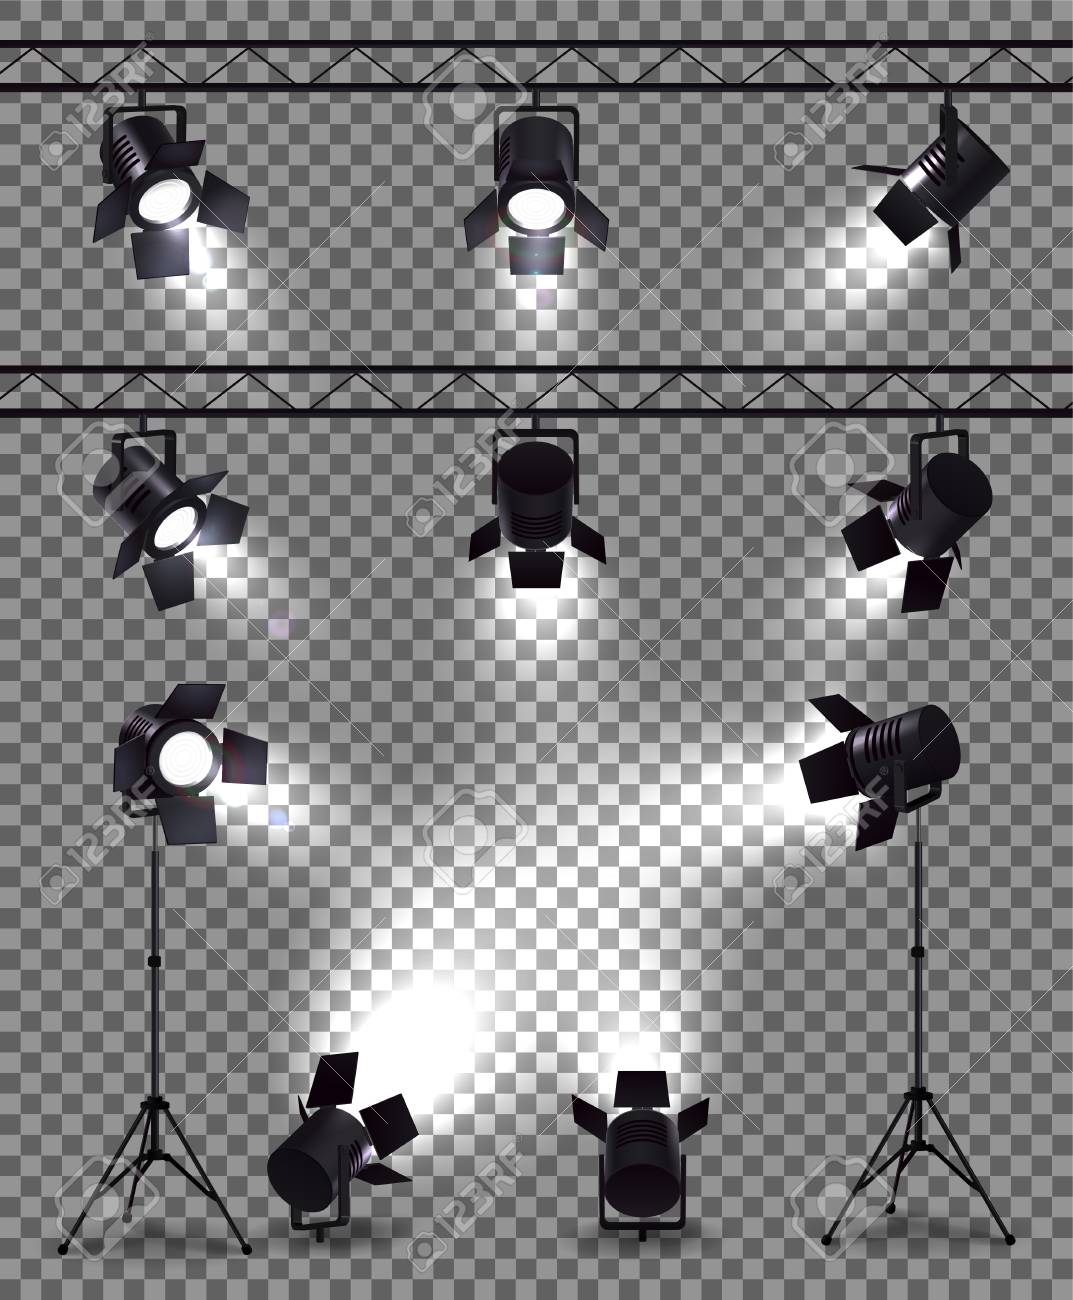 Spotlights set with realistic images on transparent background with metal body spot lights and mounting equipment vector illustration - 126529877